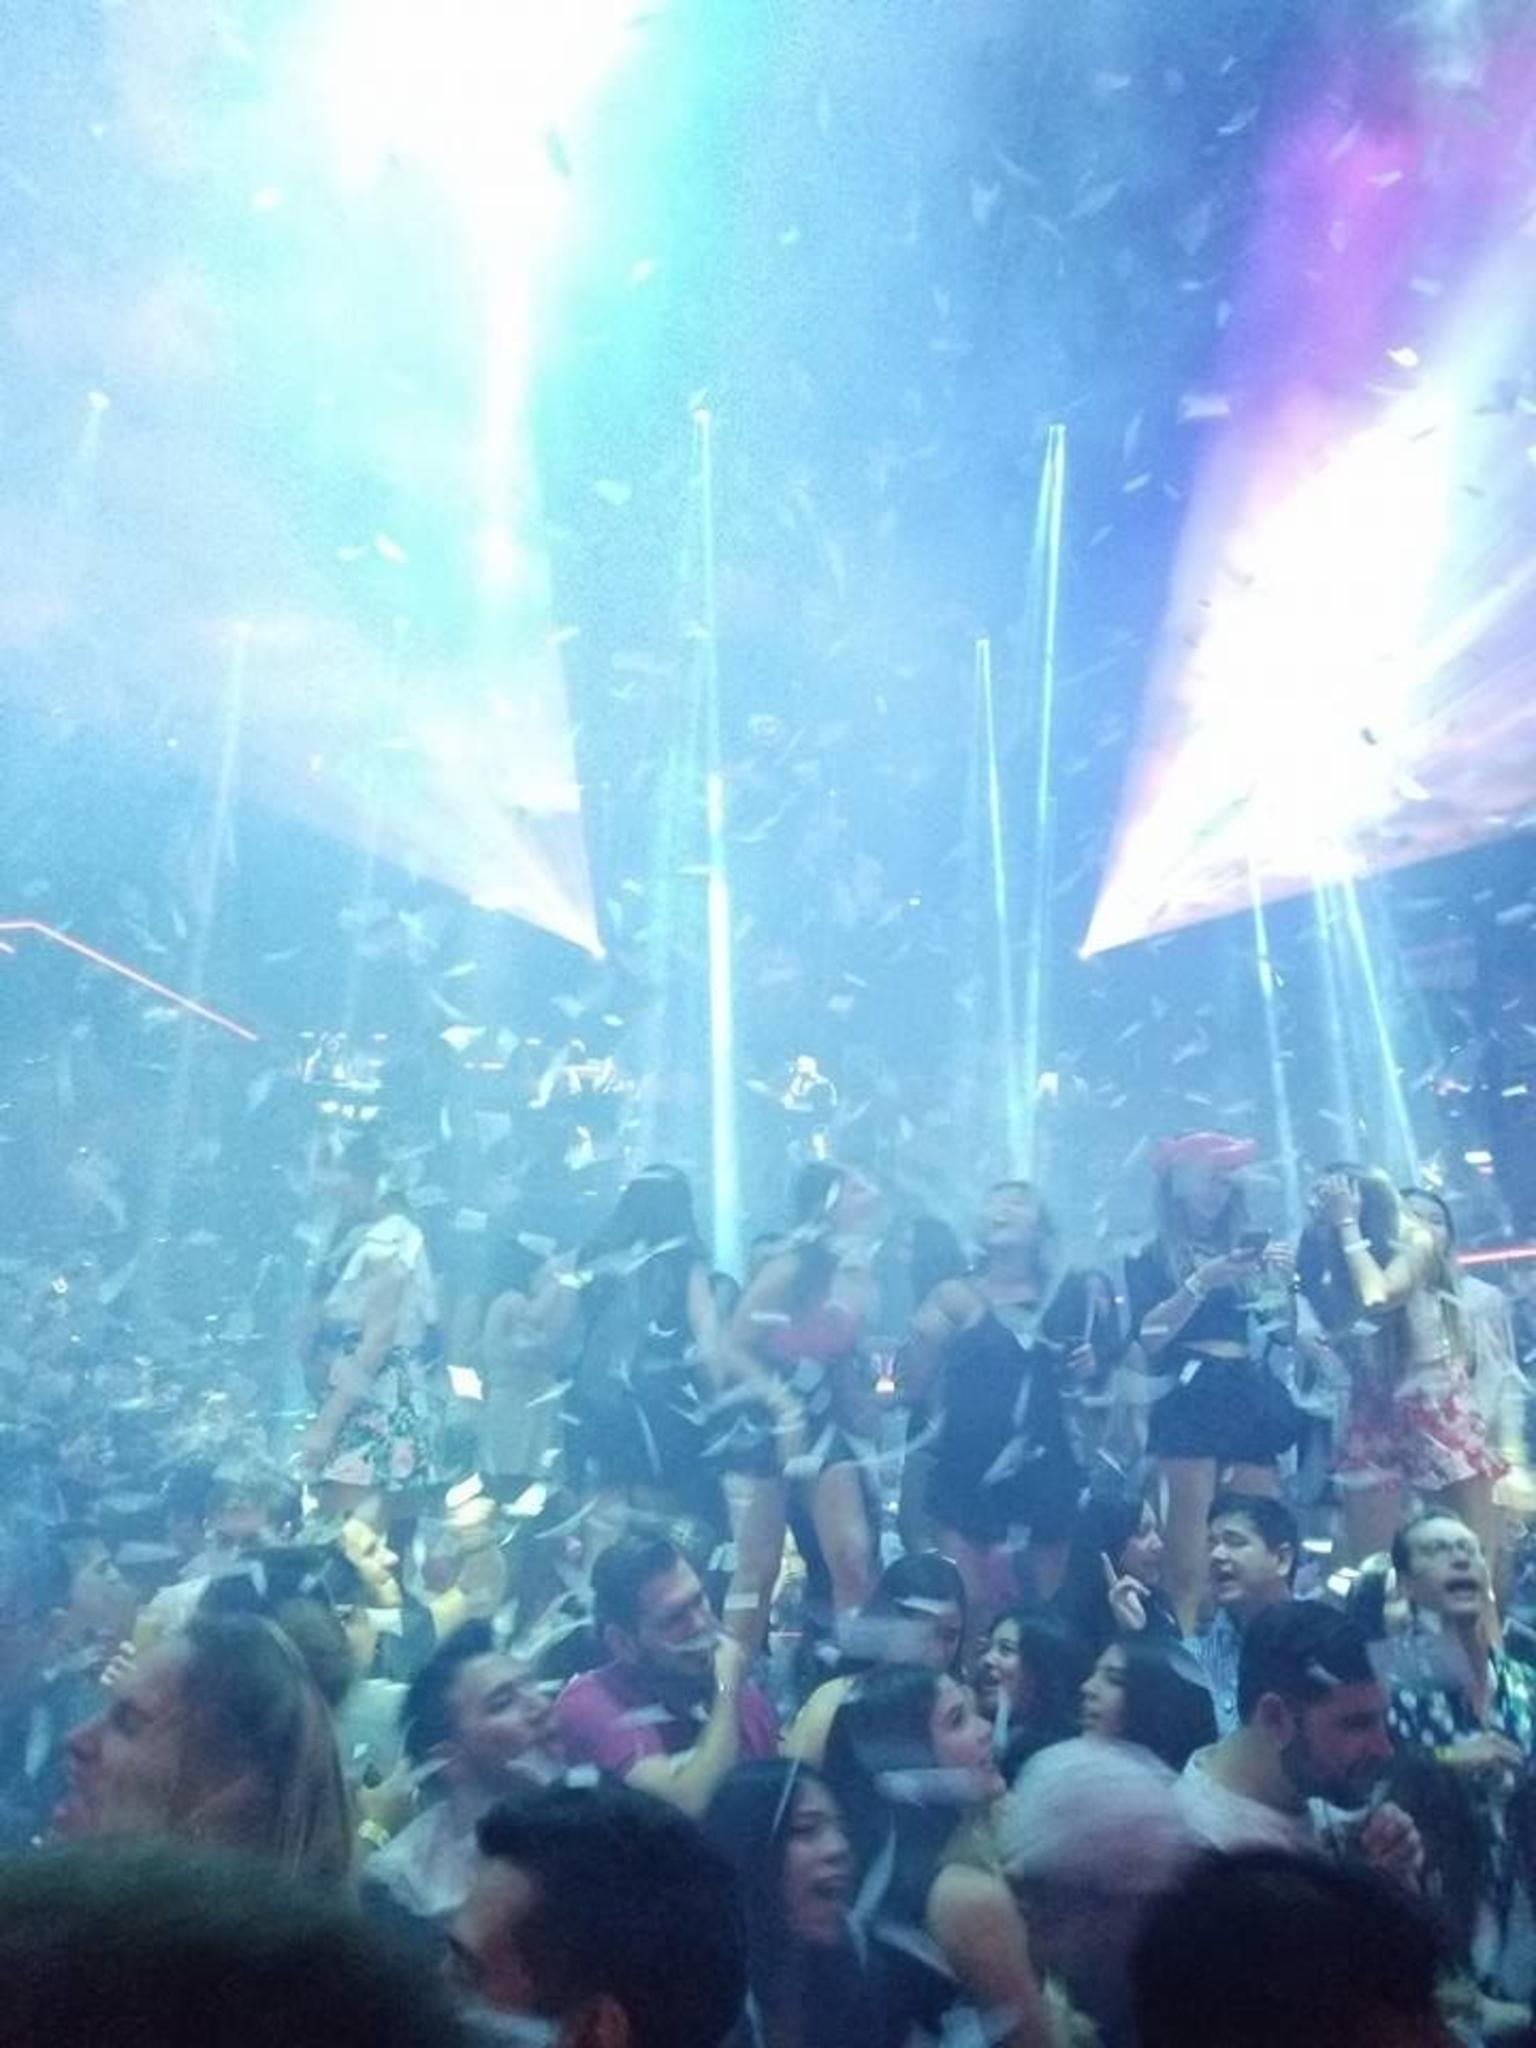 Skip-the-Line Coco Bongo Open Bar Experience Entrance Ticket